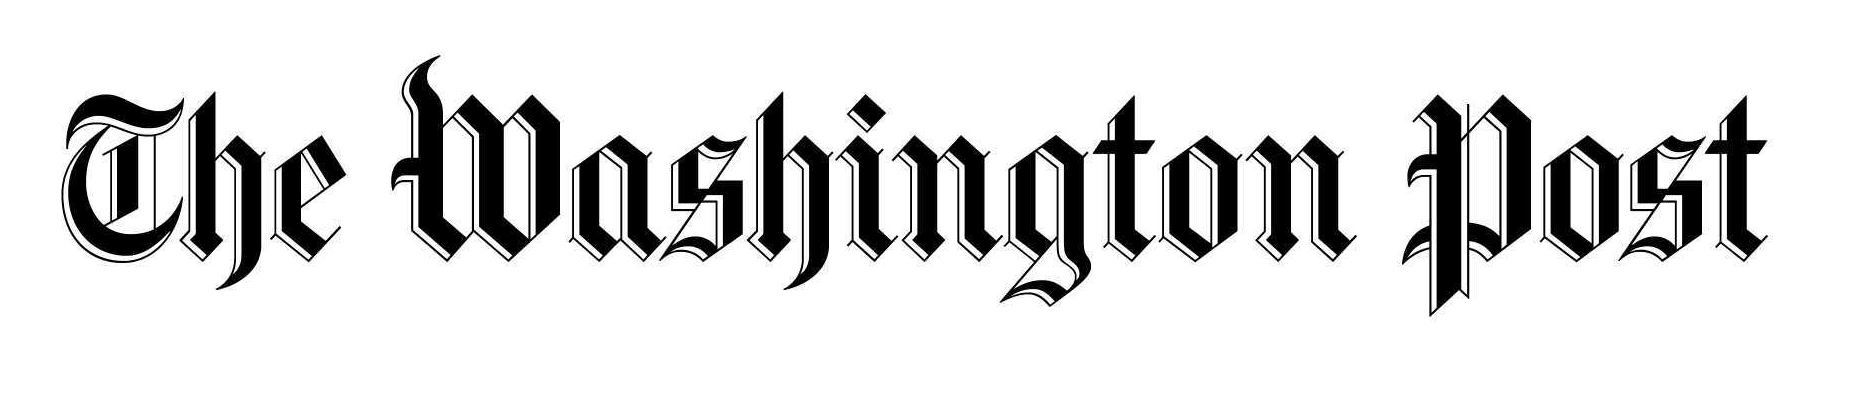 Washington Post Masthead Image